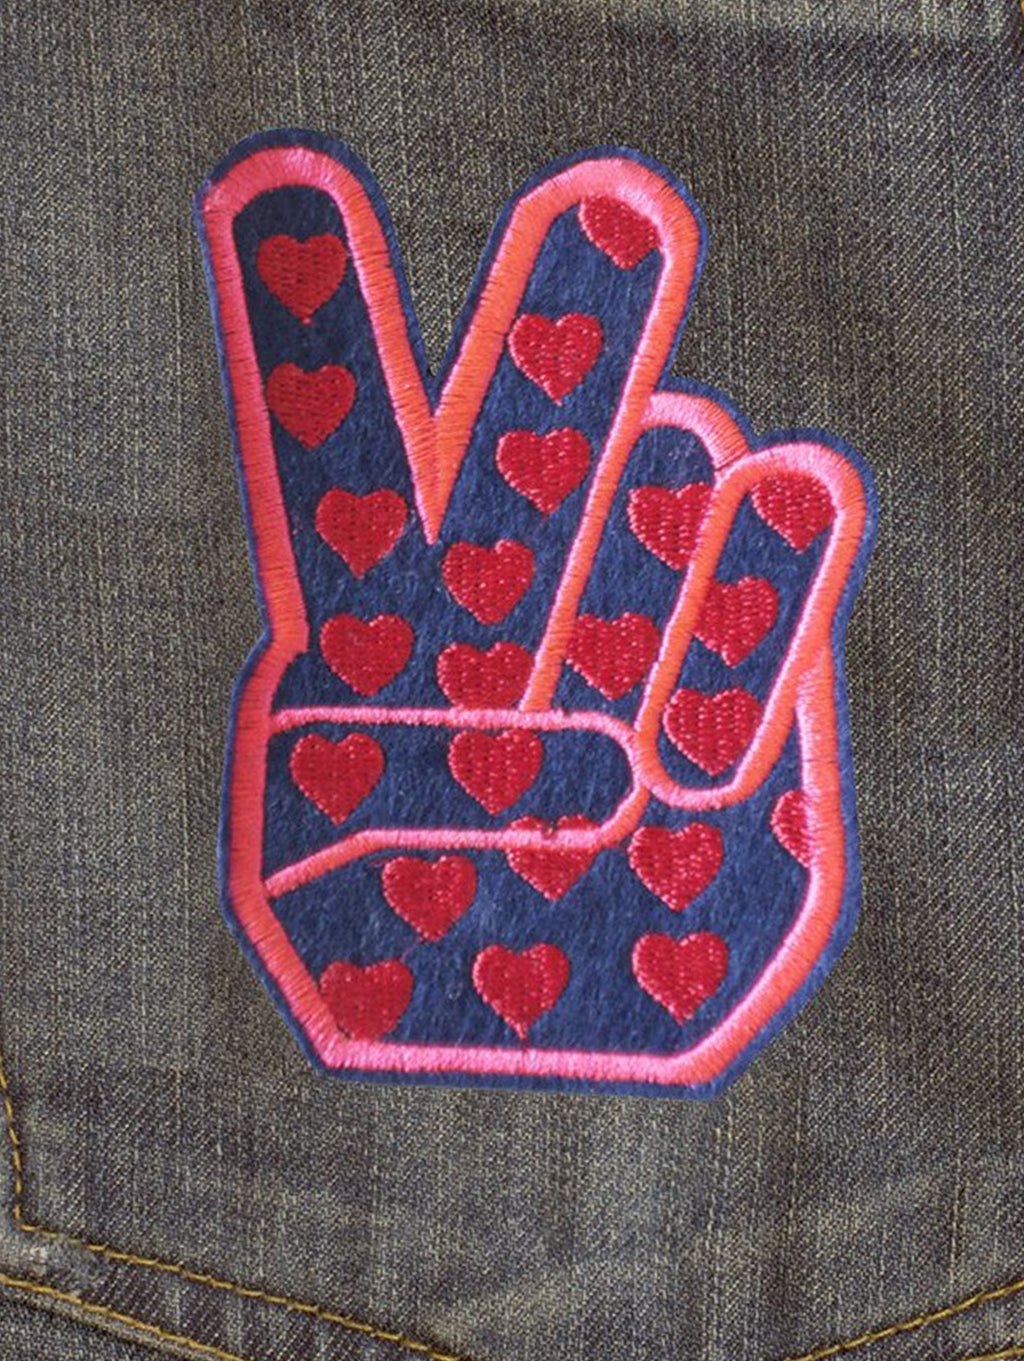 DANDY STAR PEACE HEARTS PATCH